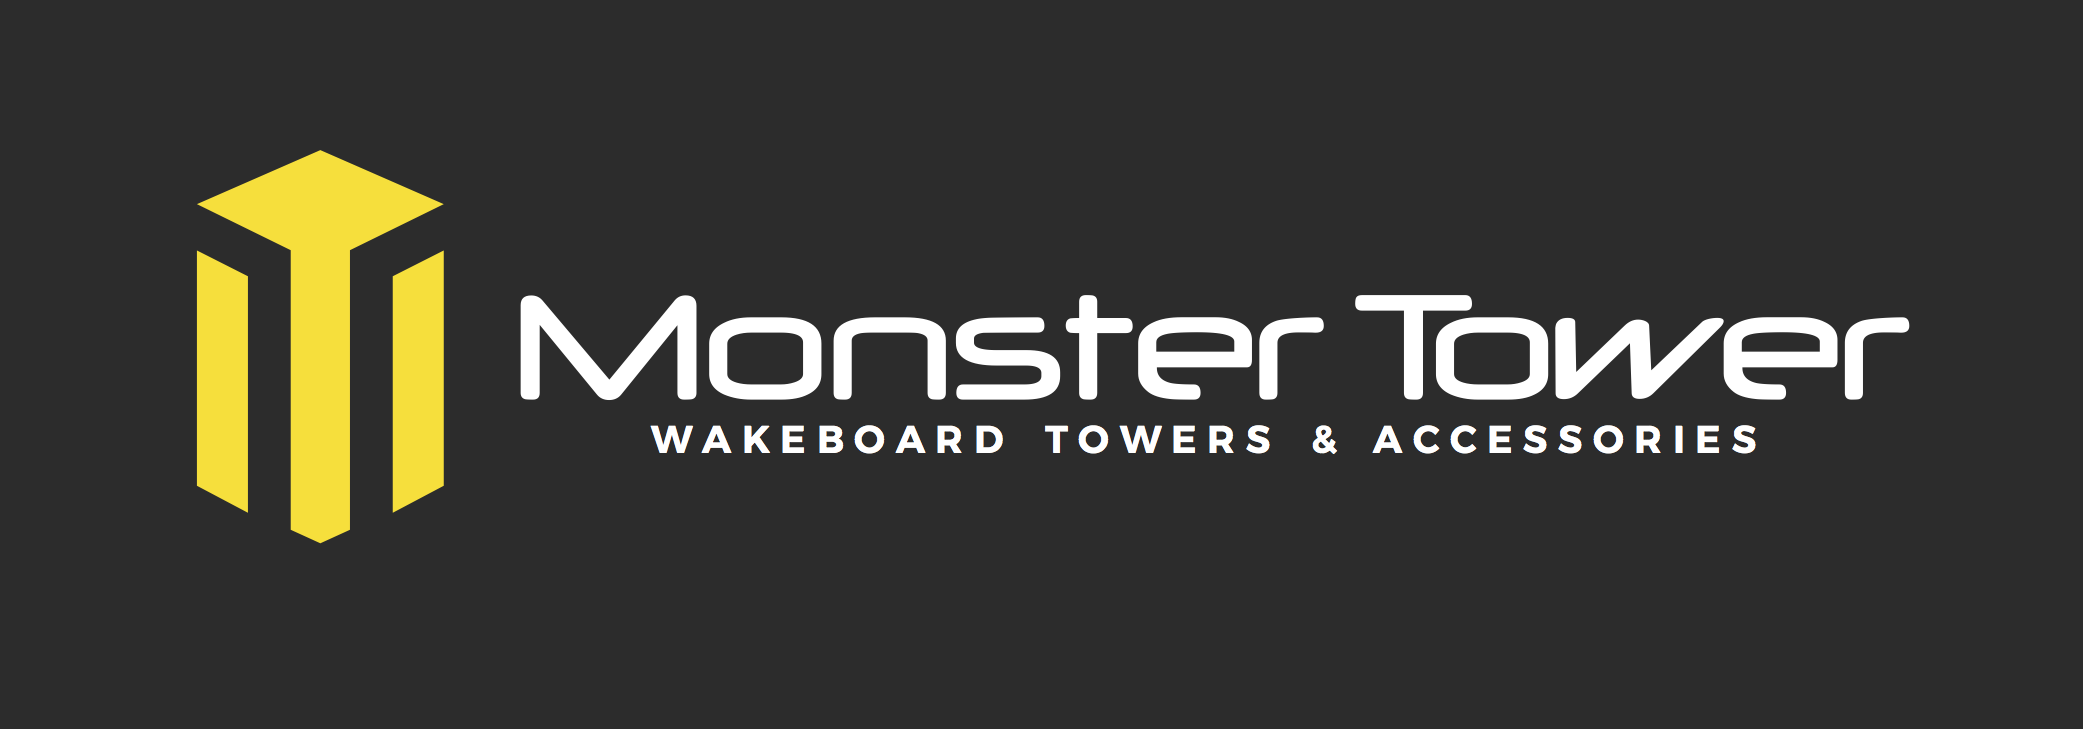 Logo Monster Tower Argentina